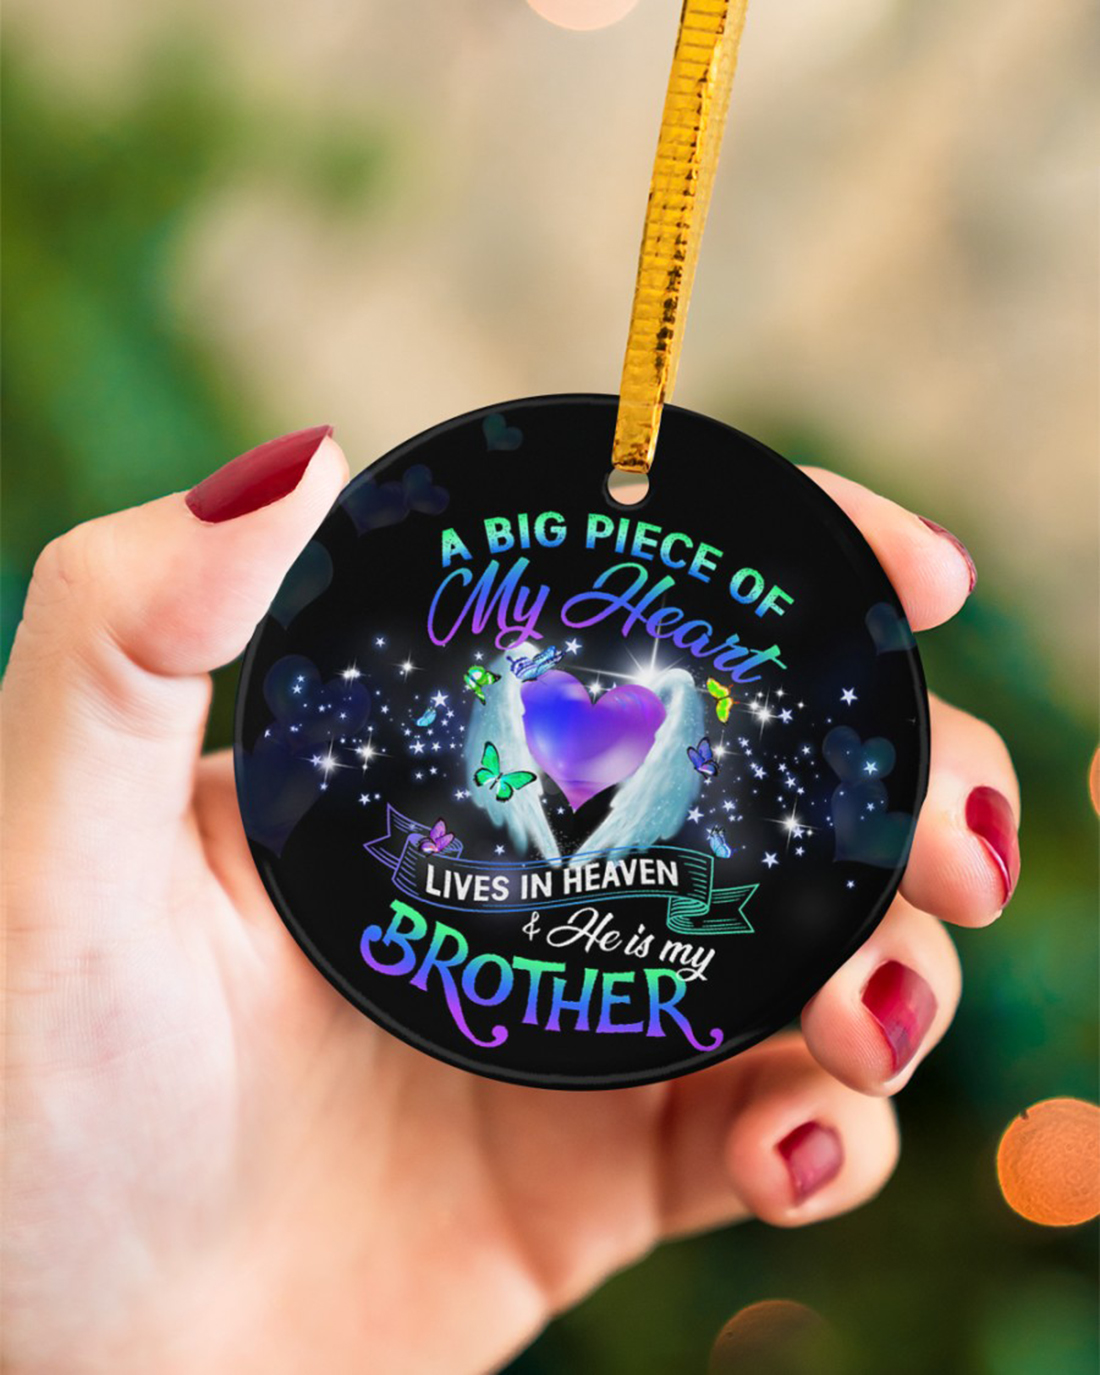 A big piece of my heart lives in heaven and he is my brother circle ornament